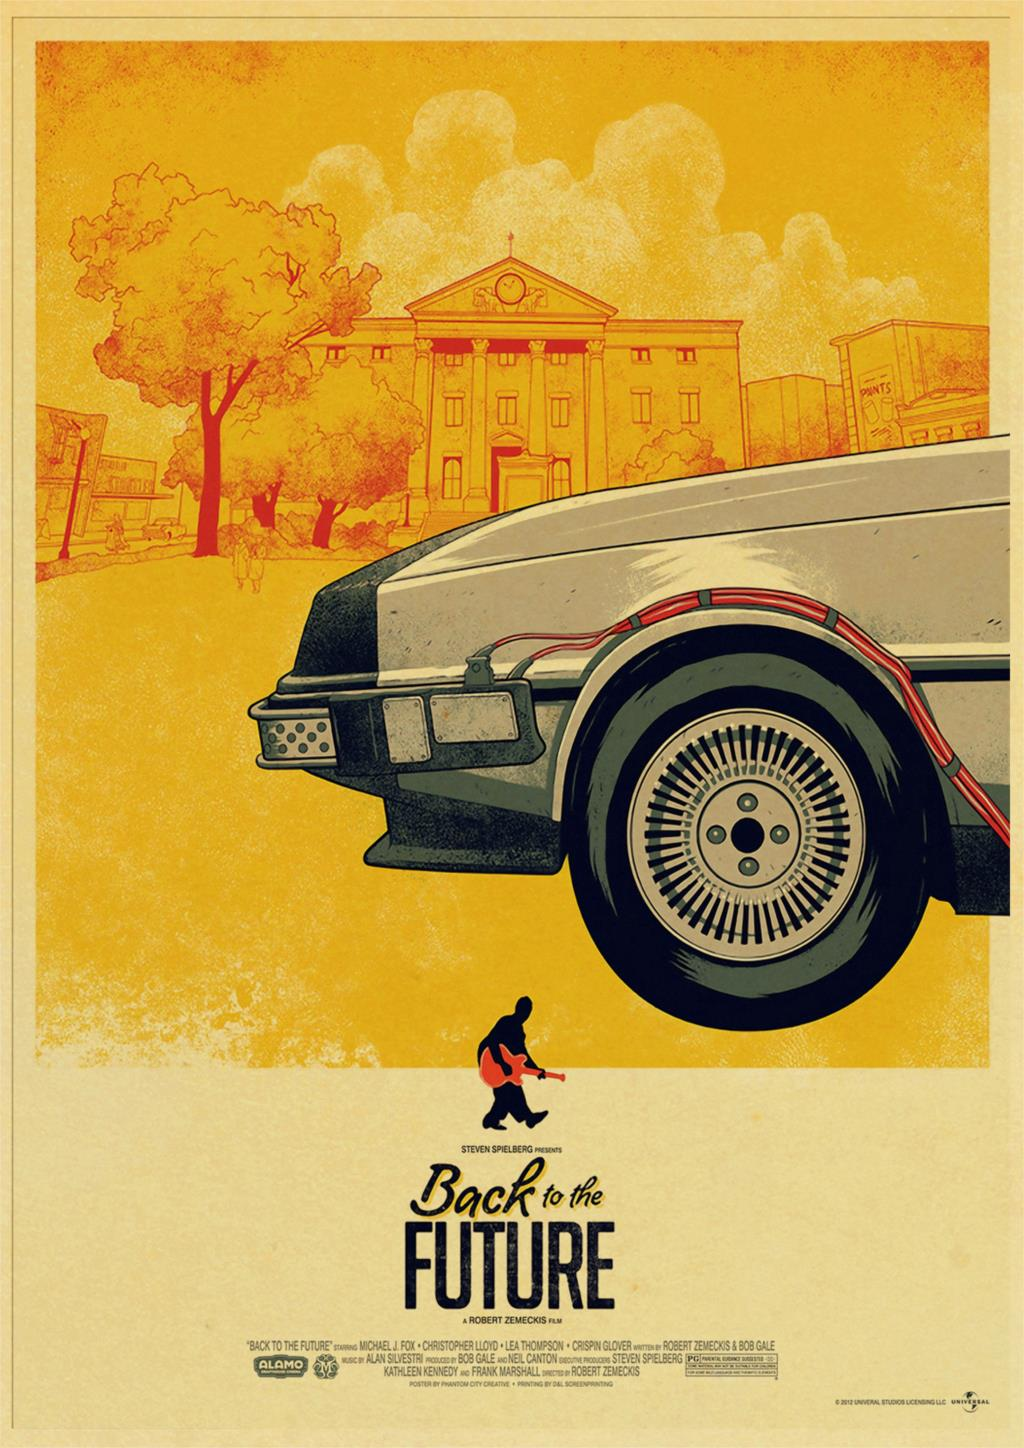 HTB1MYXJOXYqK1RjSZLeq6zXppXaY Classic Movie Back To The Future Vintage Posters For Home/Bar/Living Decor kraft Paper high quality poster wall sticker